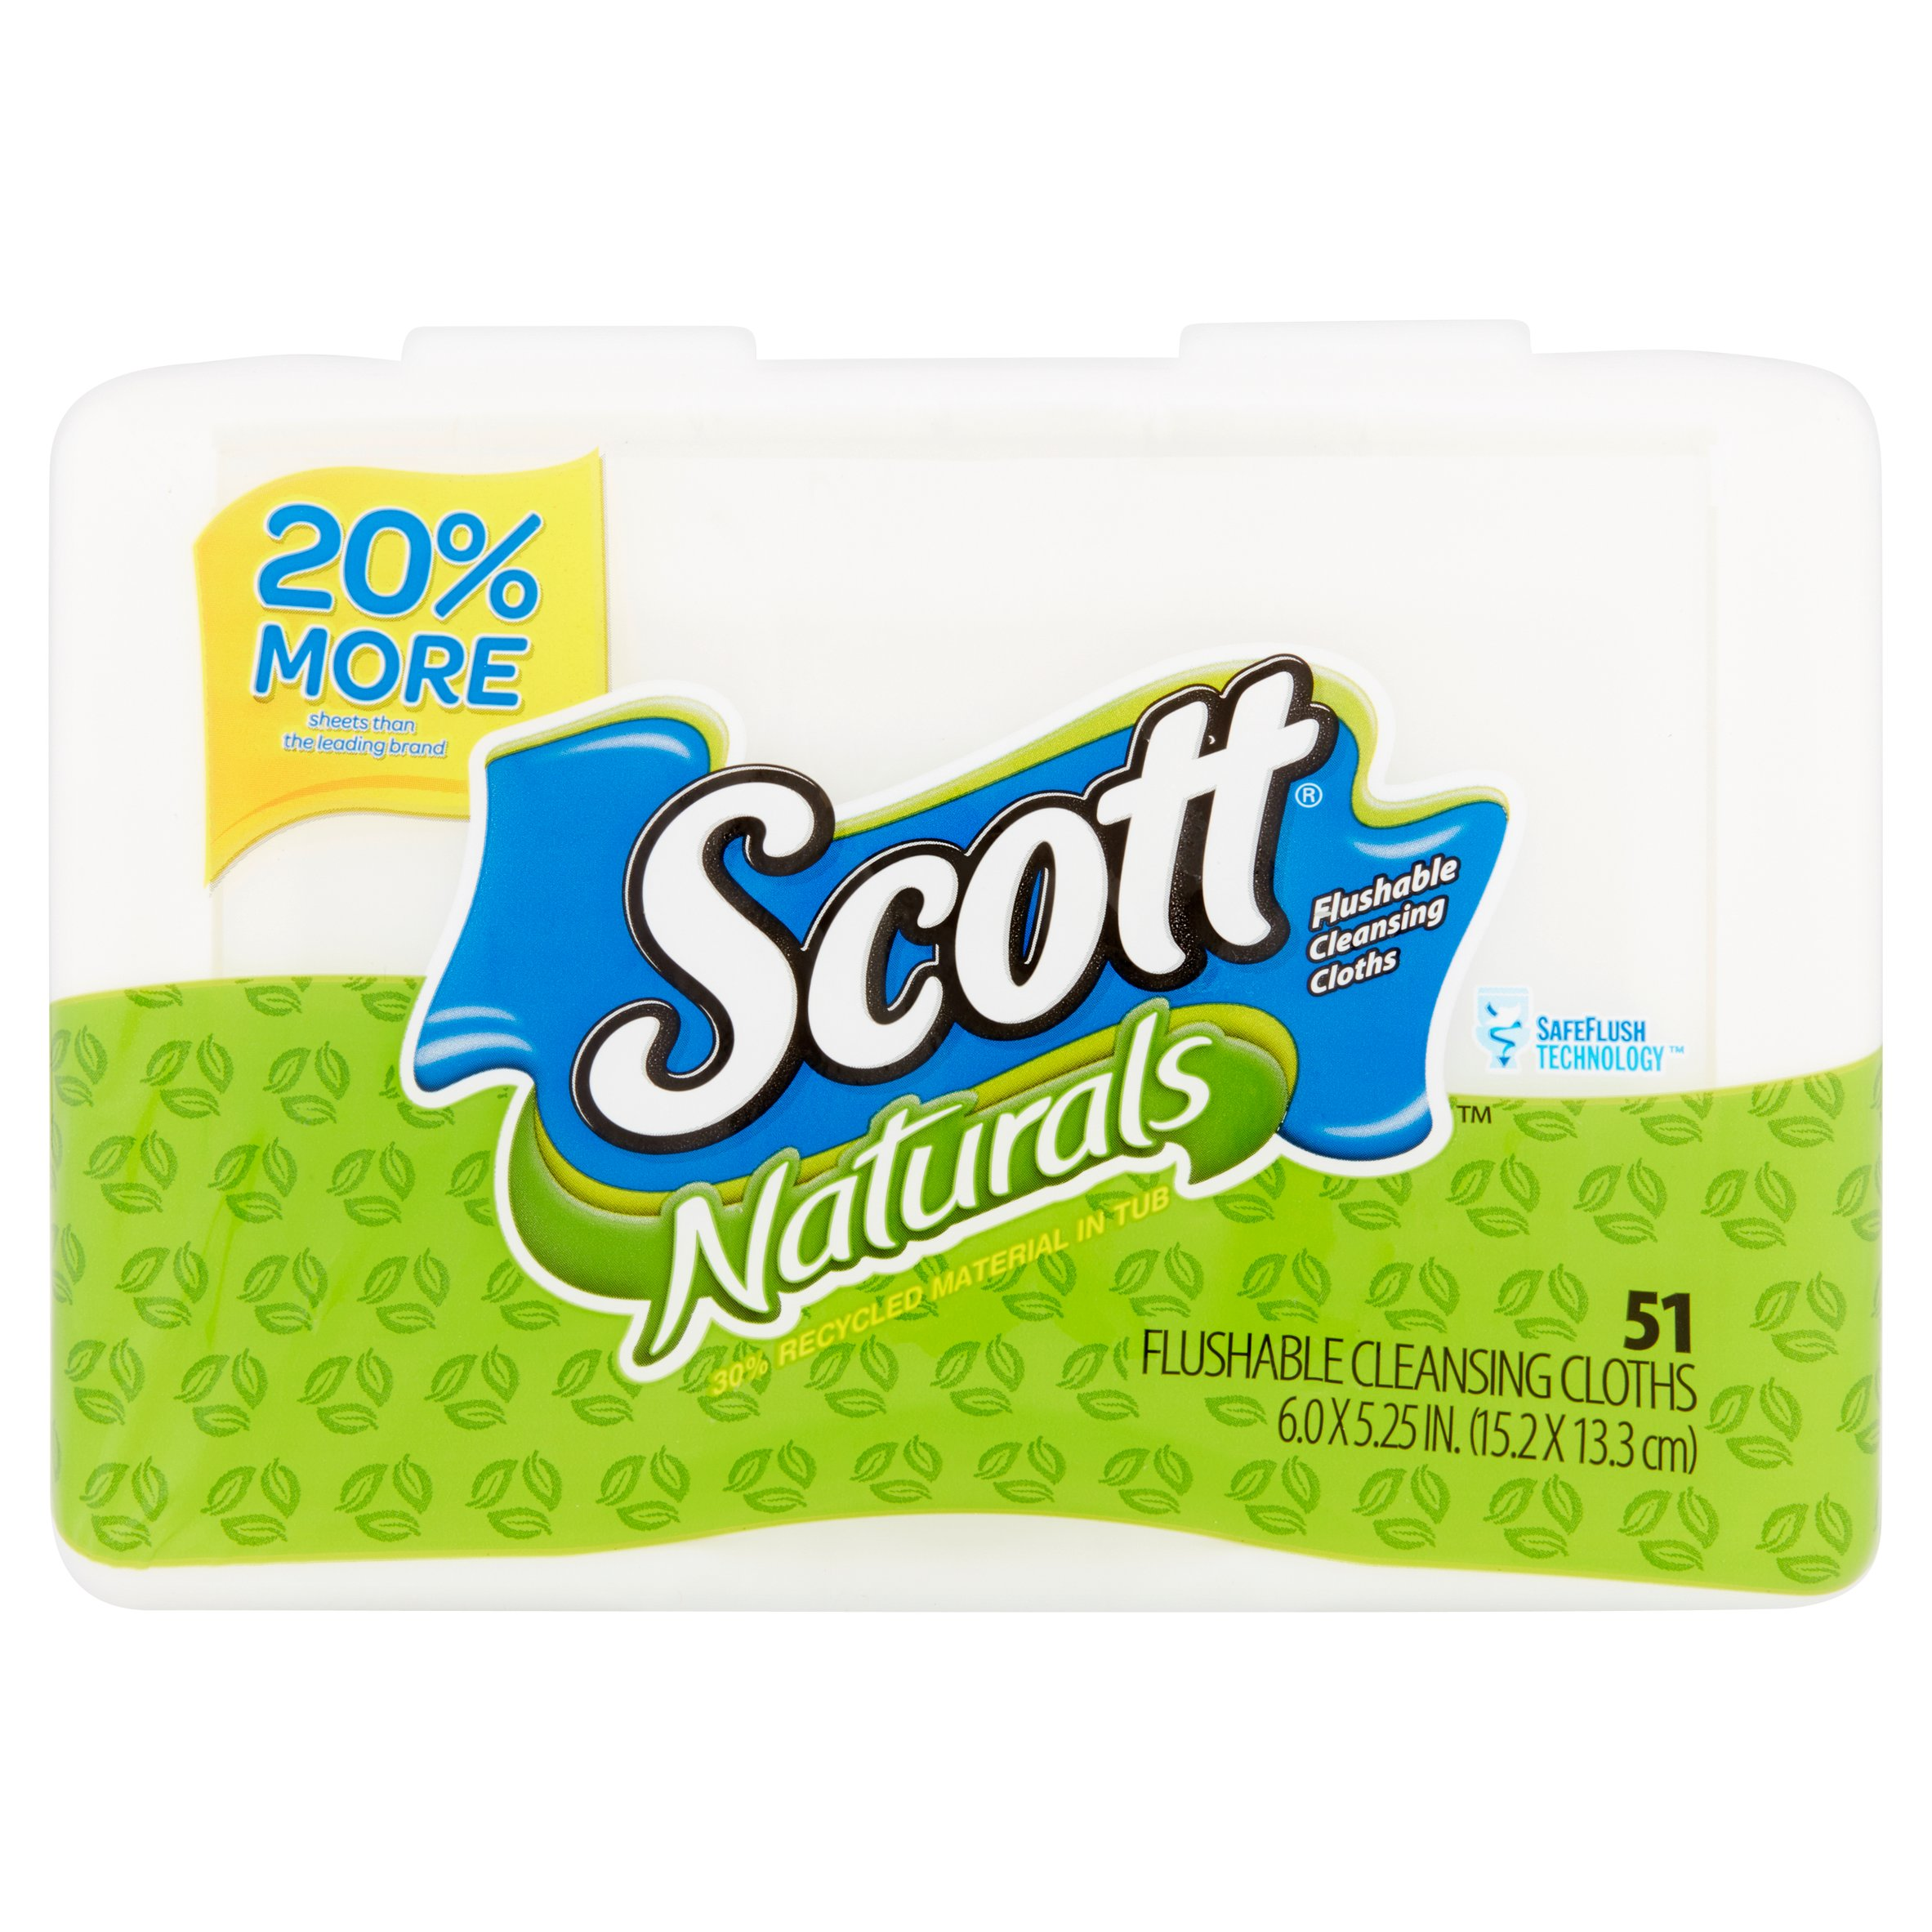 Scott Naturals Flushable Cleansing Cloths Tub, Scented, 51 wipes